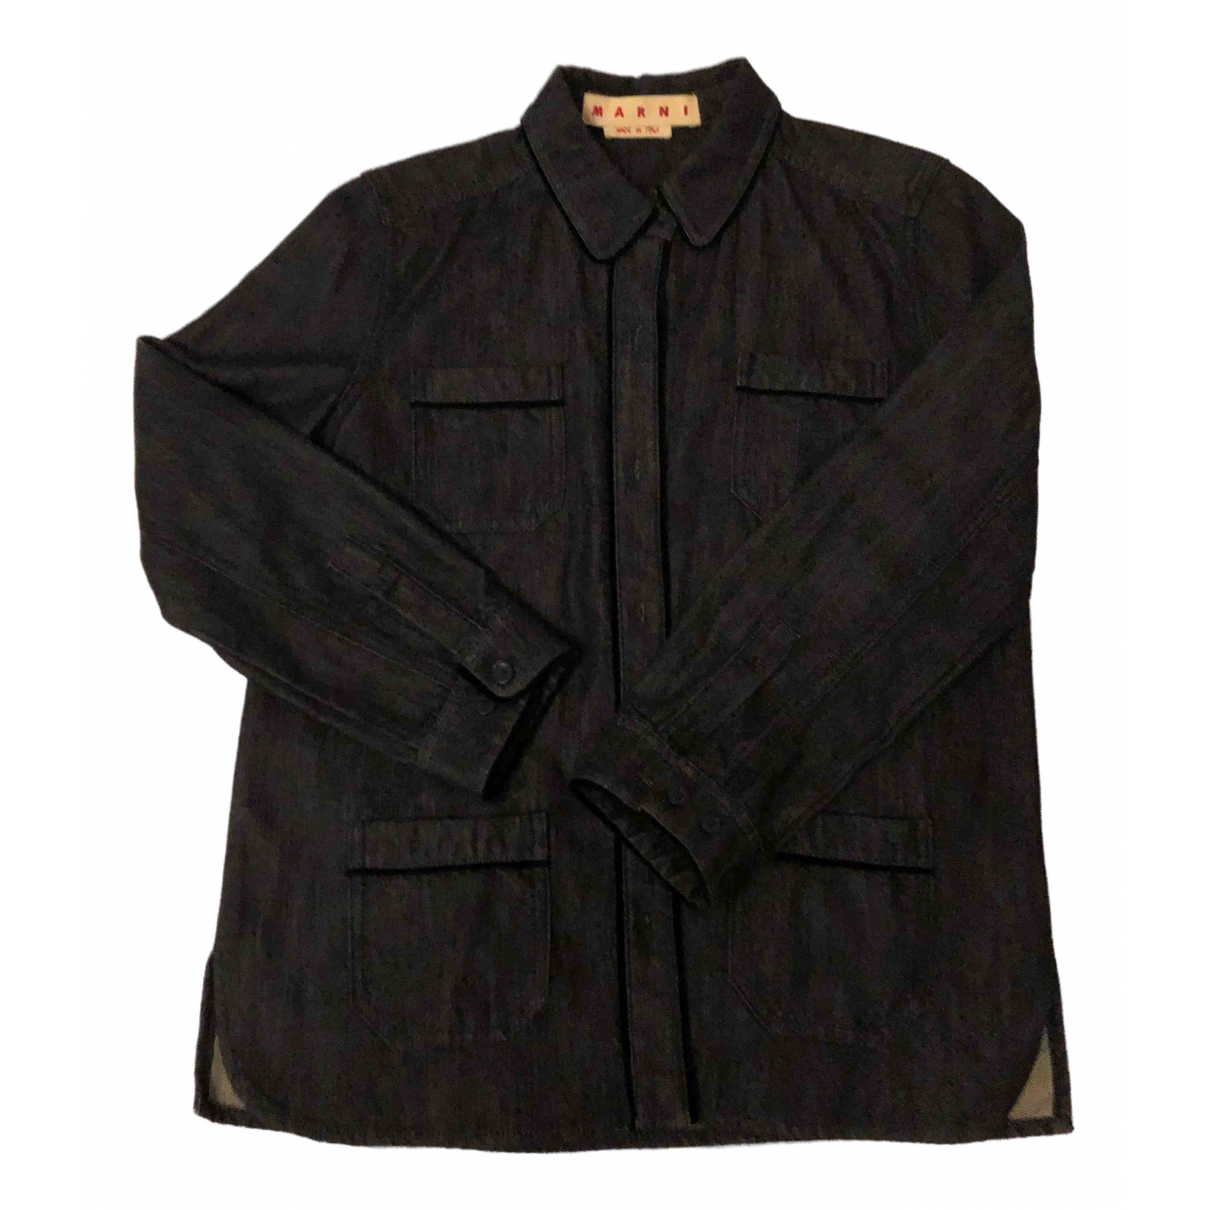 Marni \N Black Denim - Jeans jacket for Women 42 IT